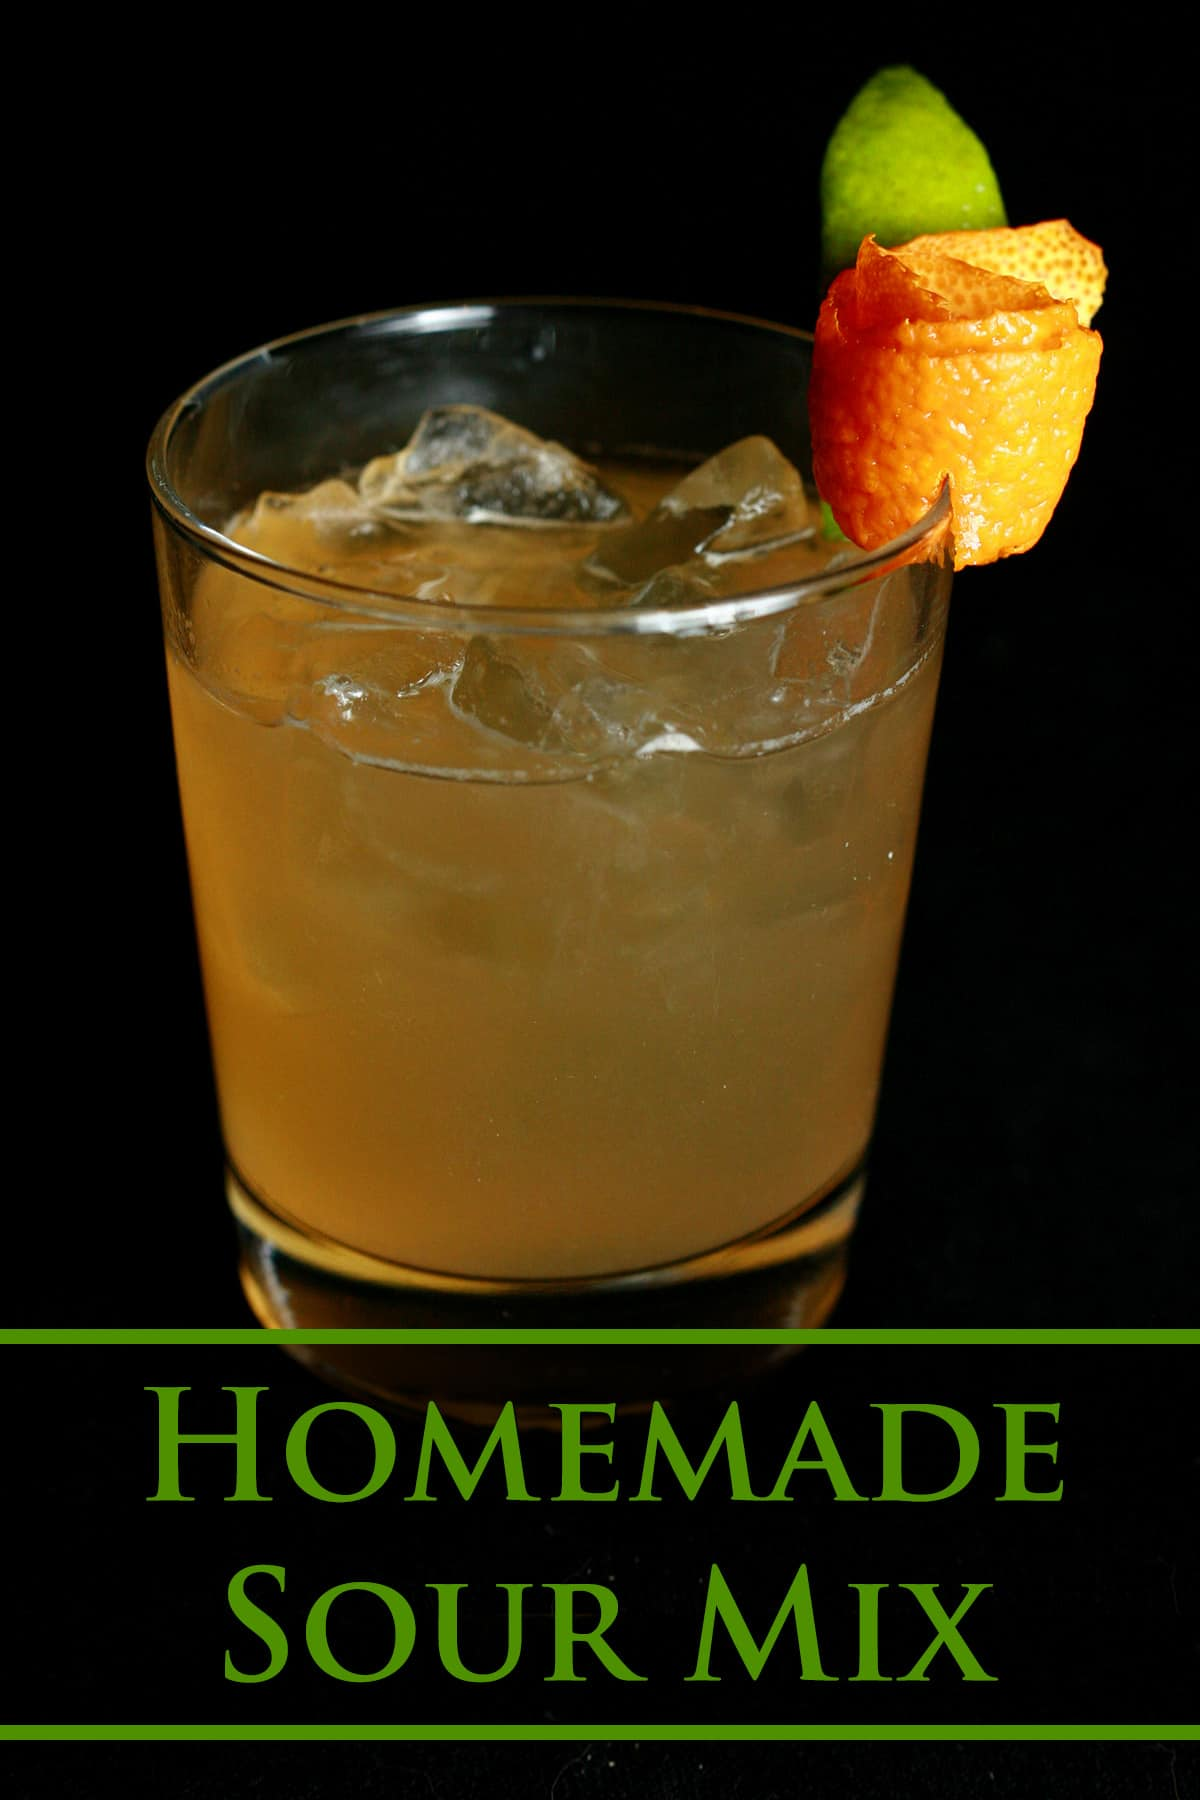 A small amaretto sour cocktail. Green text overlay says homemade sour mix.